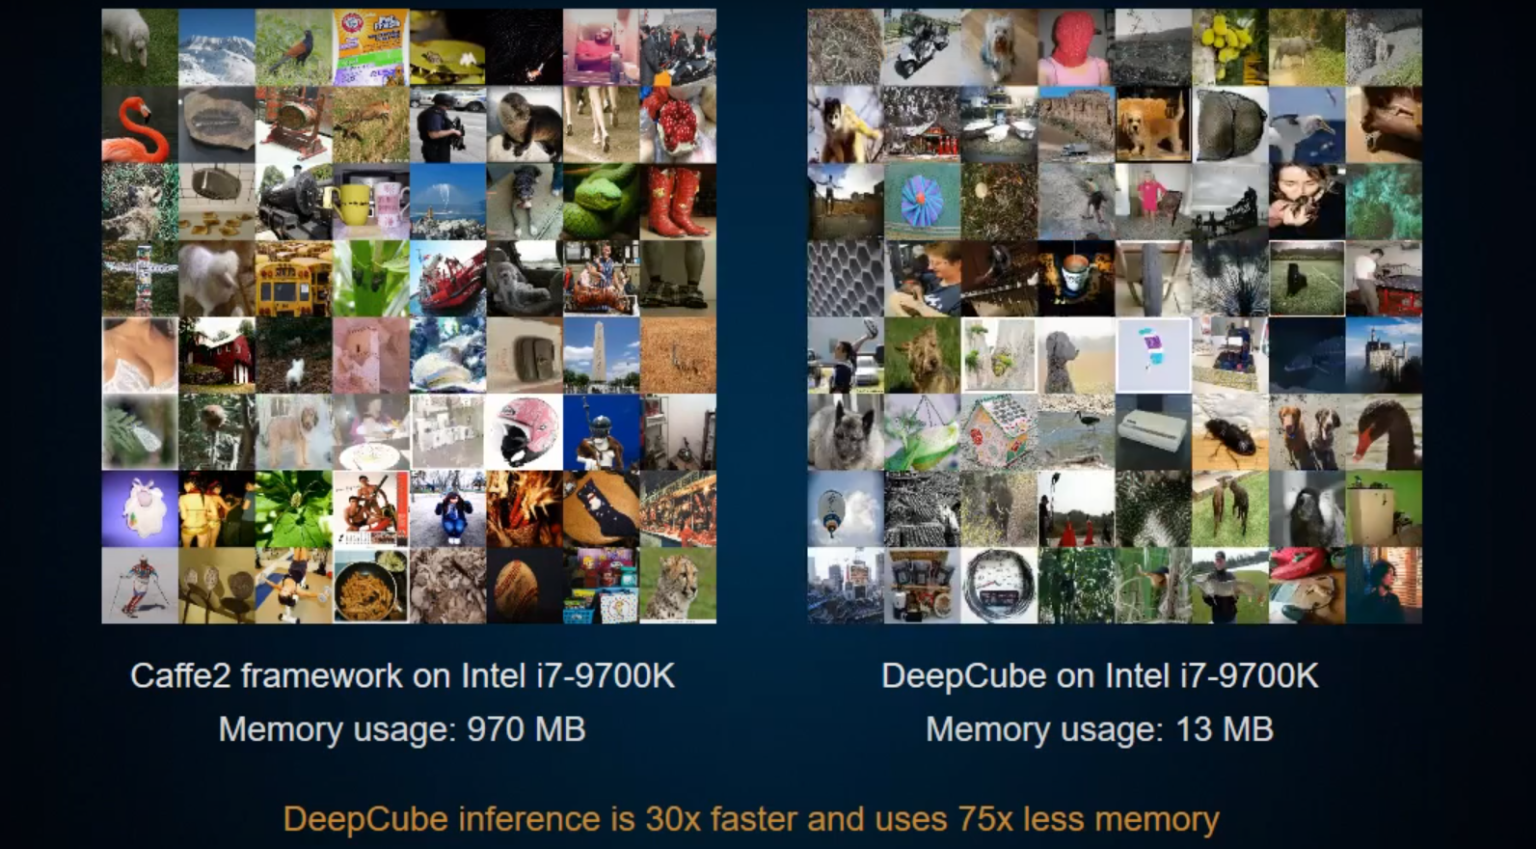 Deep Learning on steroids: Koch Disruptive Technologies gets in on DeepCube's $7M Series A